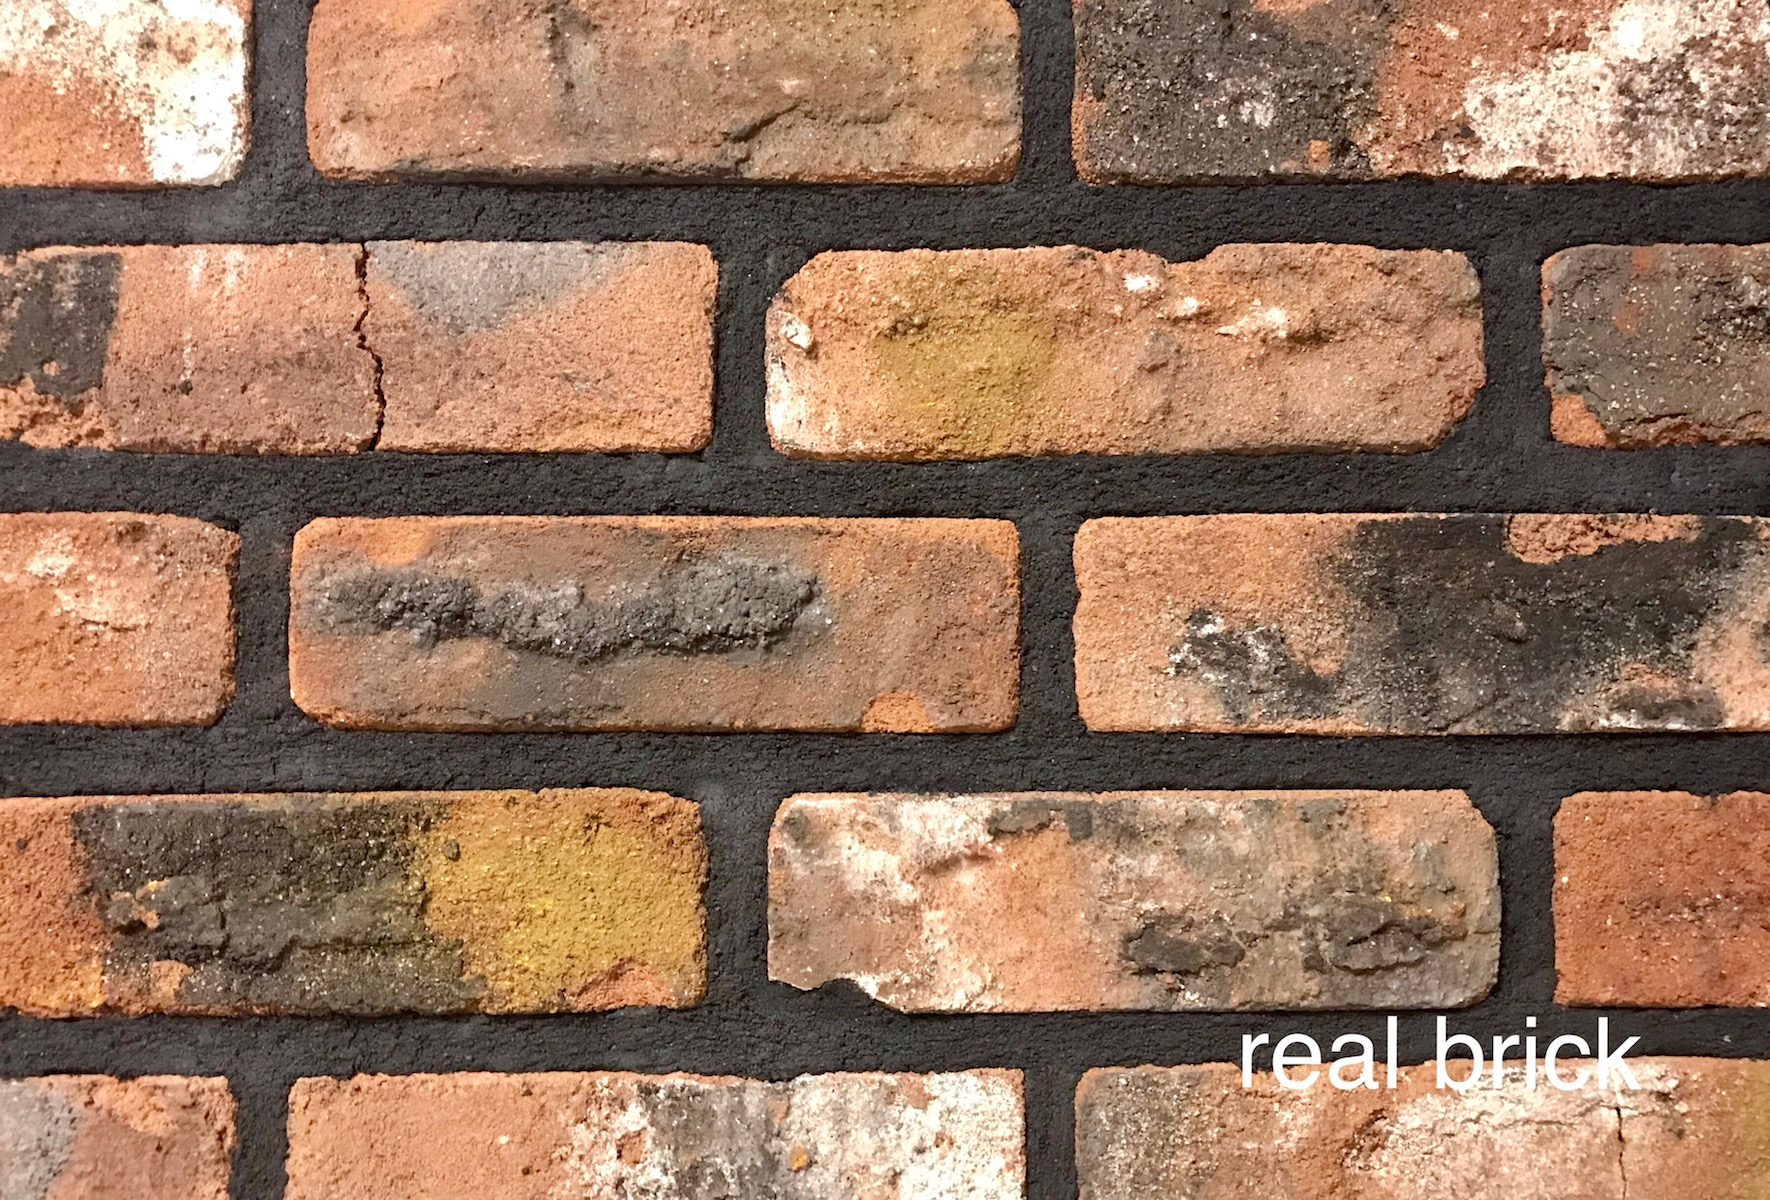 Real brick 4 antiq